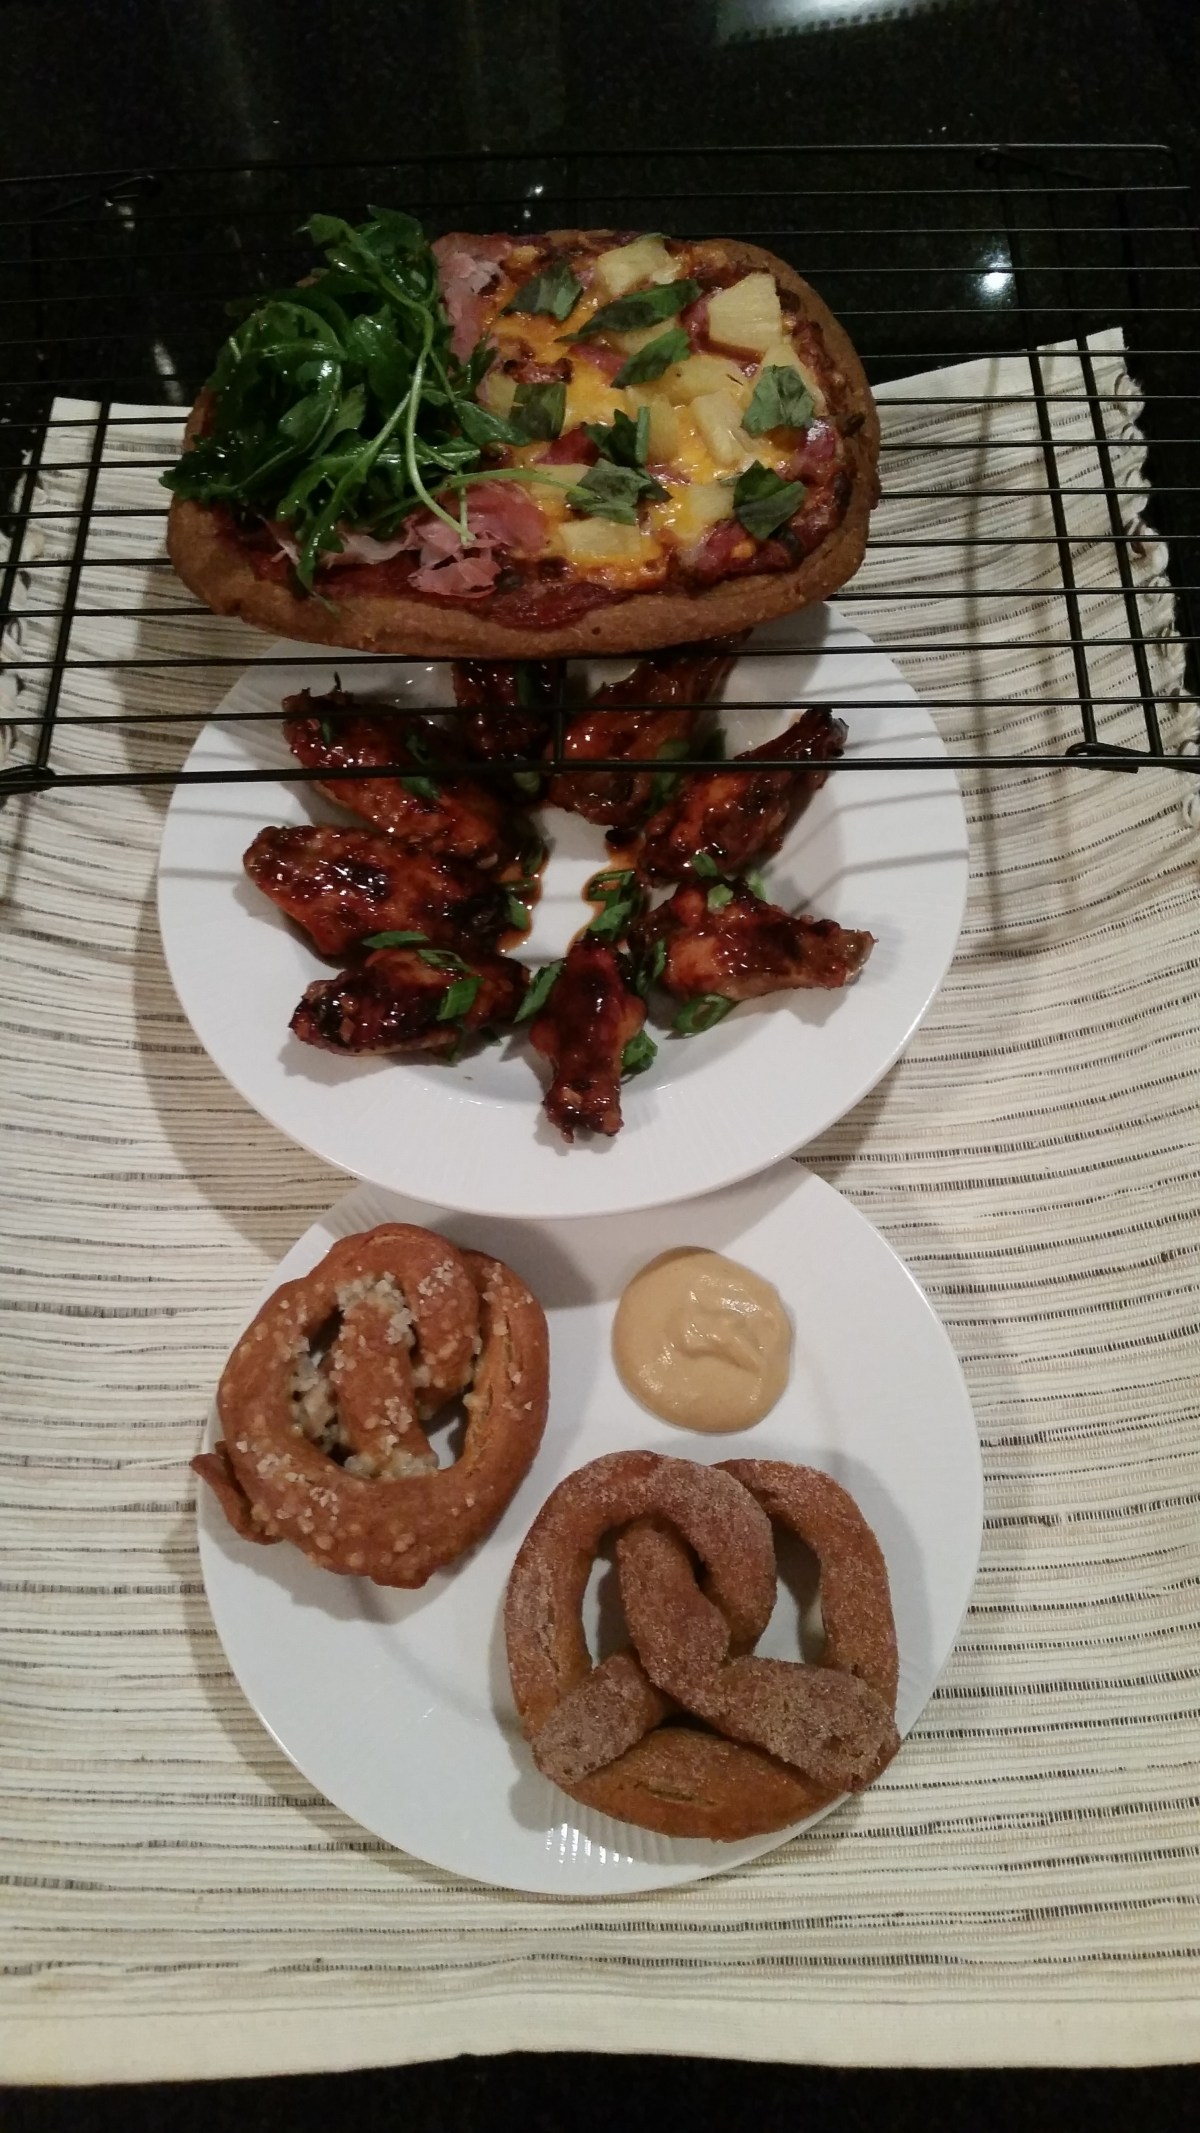 Display of GF Pizza, wings, and pretzels